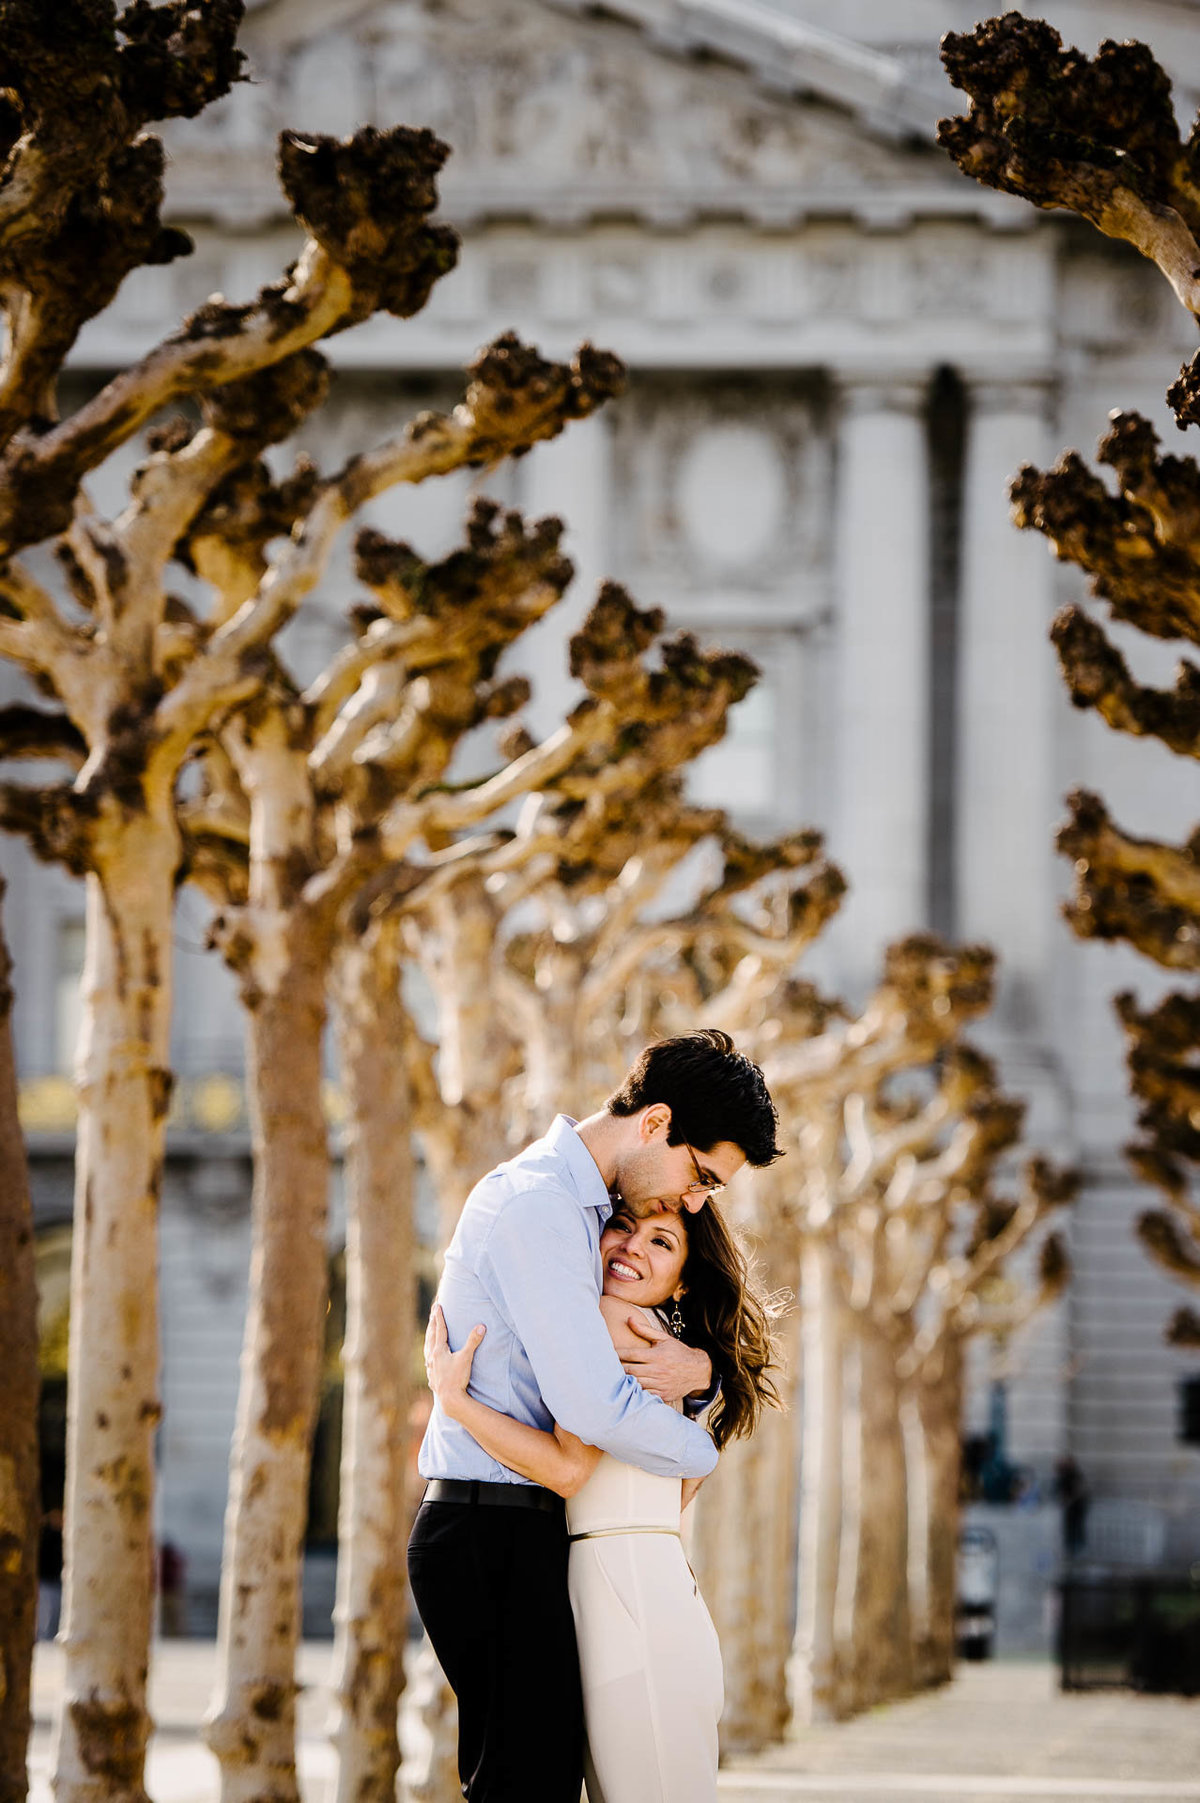 San-Francisco-wedding-photography-stephane-lemaire_03